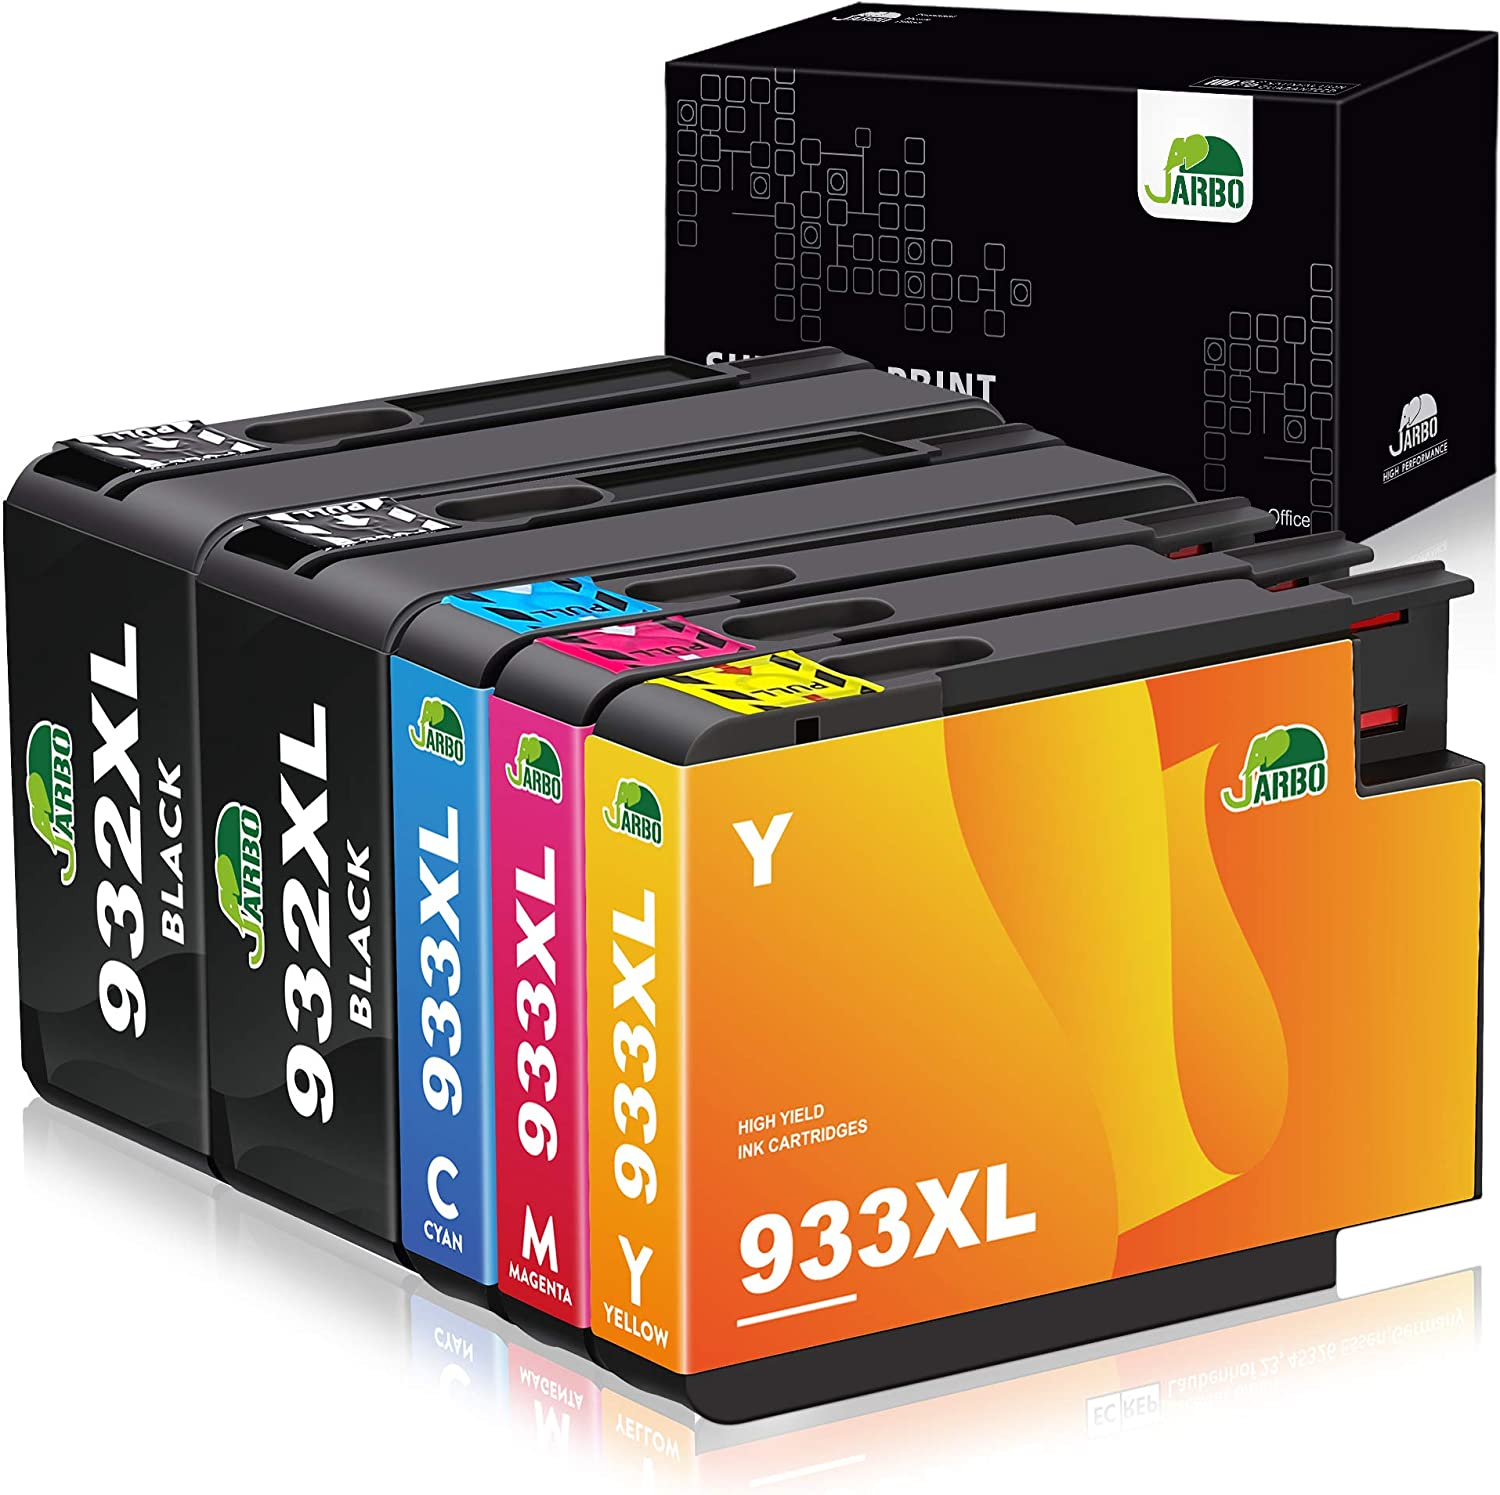 JARBO Compatible Ink Cartridges Replacement for HP 932XL 933XL High Yield, 5 Packs (2 Black 1 Cyan 1 Magenta 1 Yellow), Compatible with HP Officejet 6700 6600 6100 7110 7610 7612 Printer